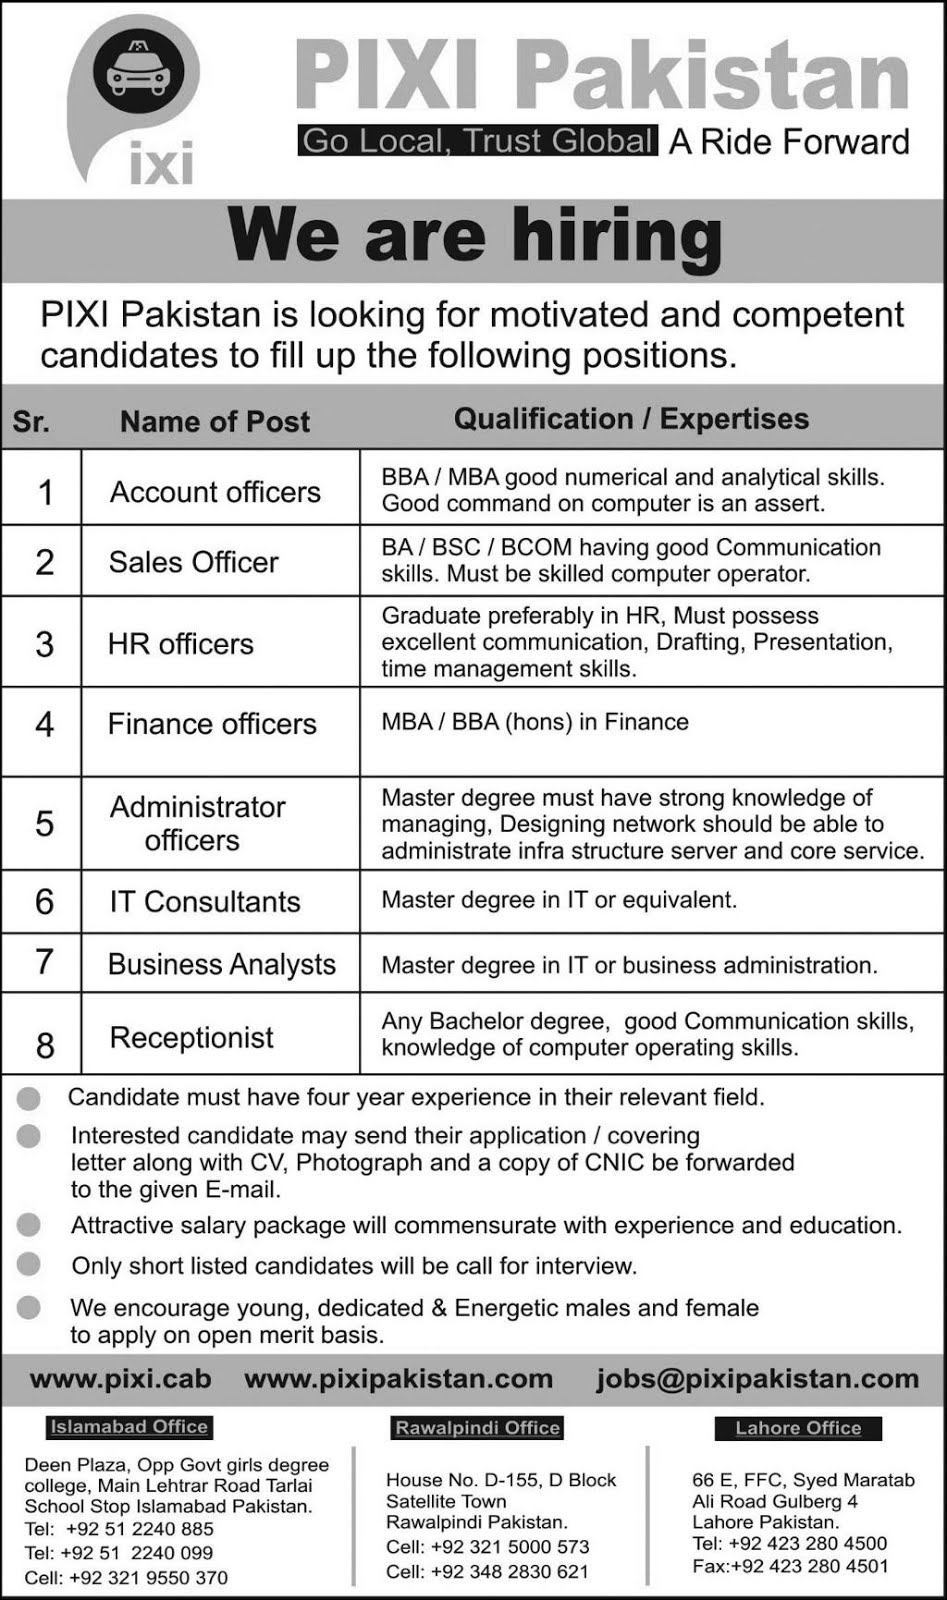 Account Officer jobs in Pixi Pakistan in Islamabad Lahore